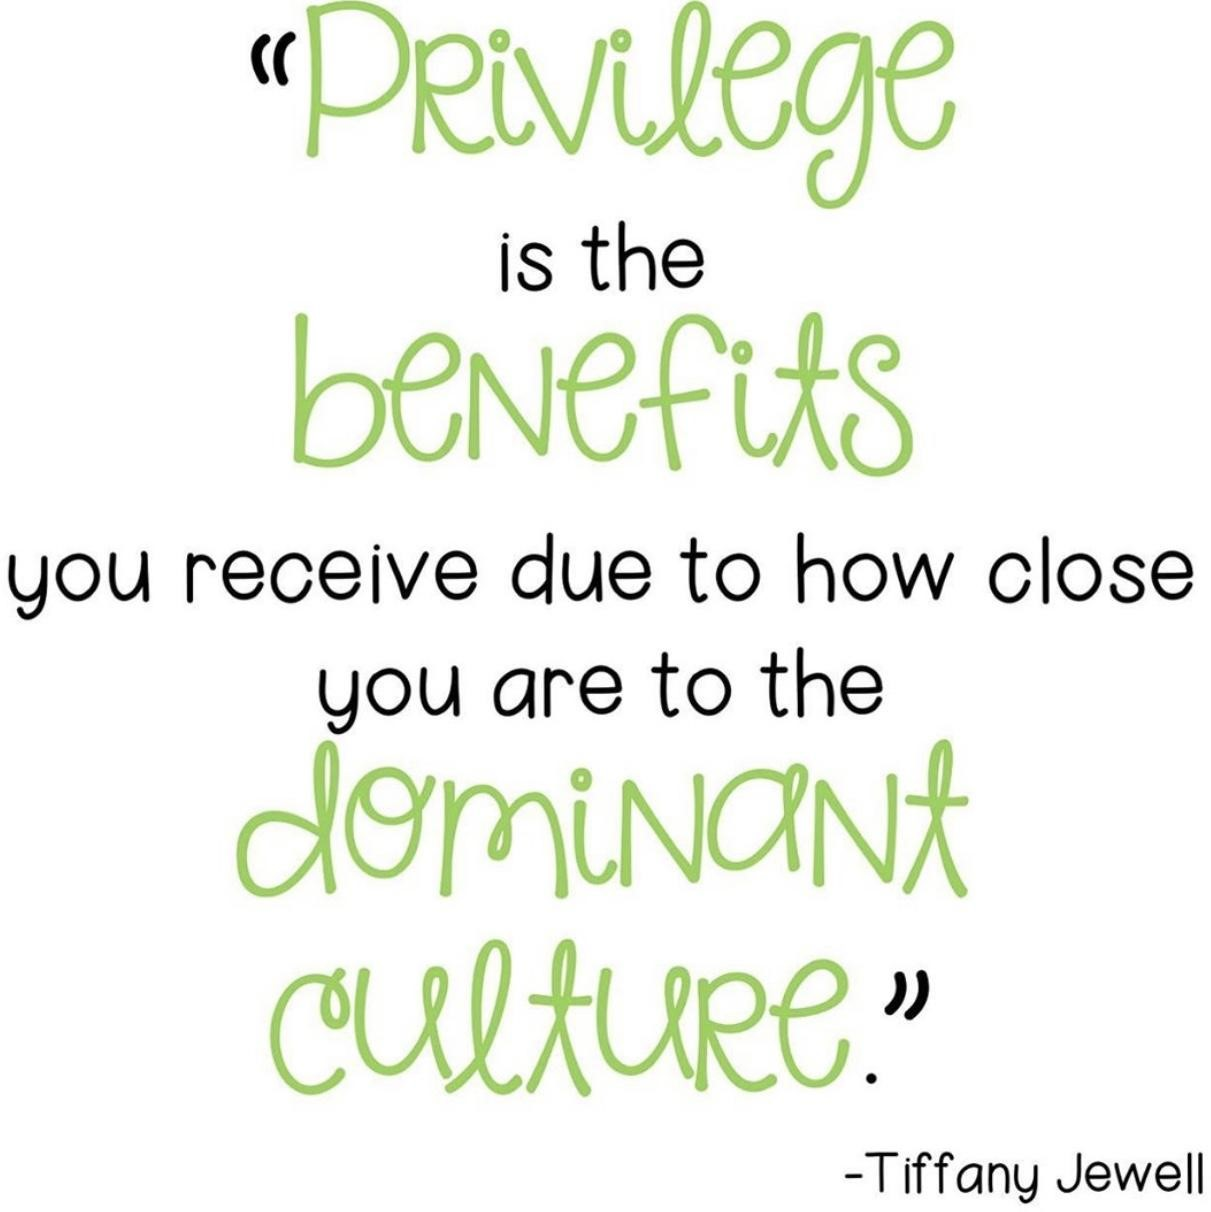 """This image has a white background with green letters saying: """" Privilege is the benefits you receive due to how close you are to the dominant culture."""" - Tiffany Jewell"""